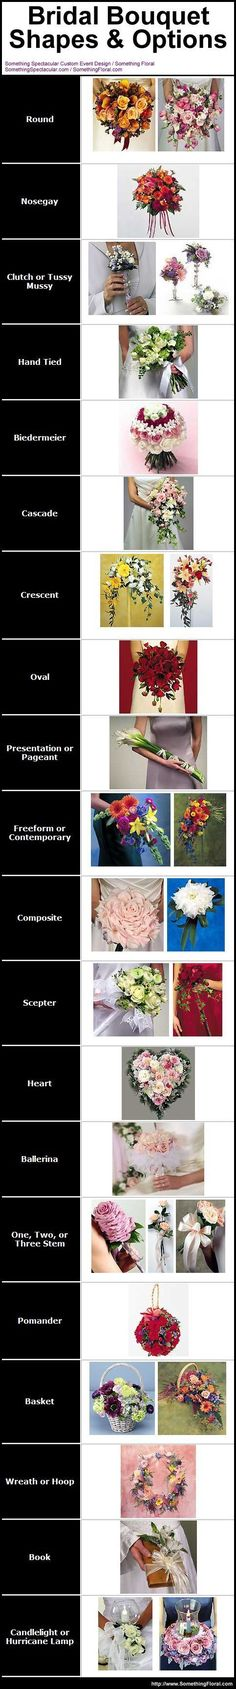 Wedding Infographic. Planning information. A helpful wedding flower reference for brides. A pictorial list of bridal bouquet and bridesmaid bouquet shapes and options. #weddingplanninginfographic